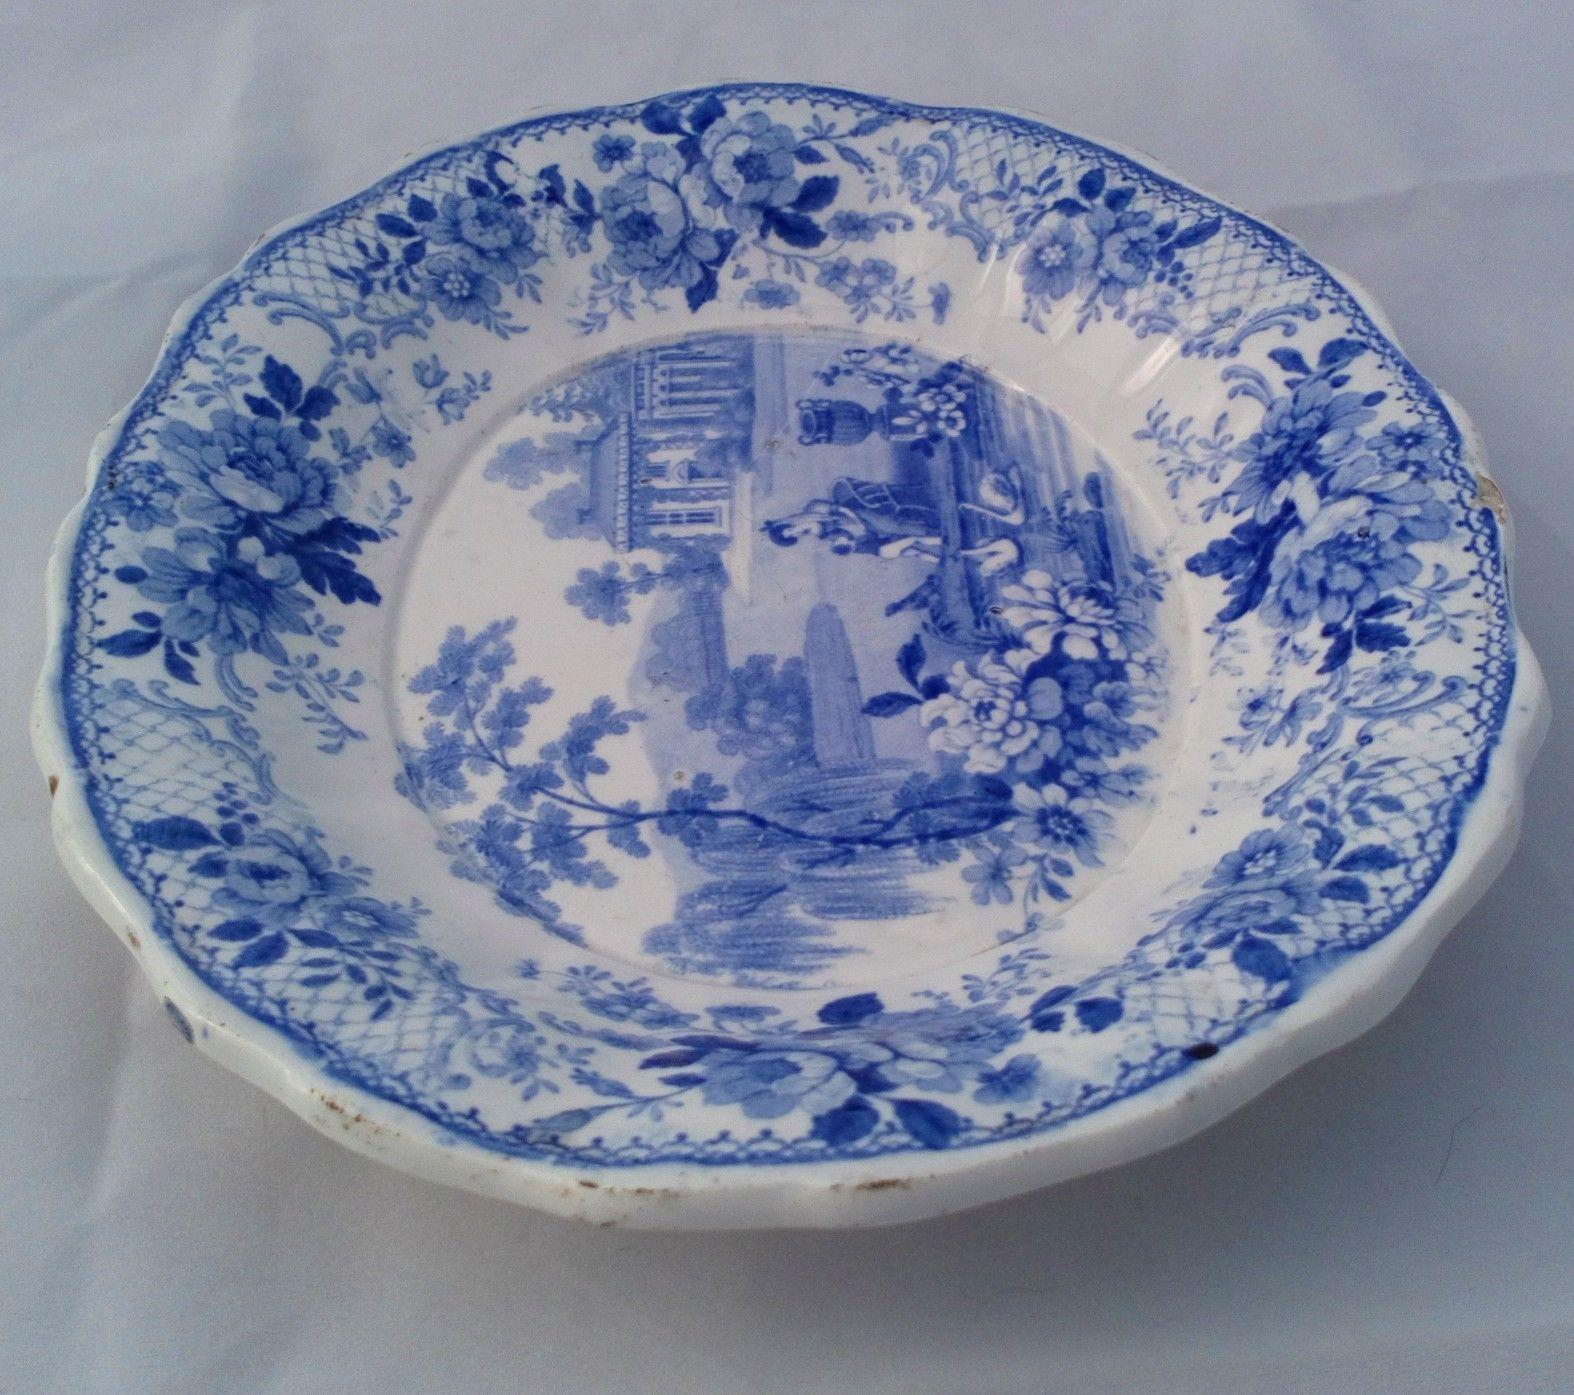 Antique Oval Plate Blue & White Transferware Domestic Scenery Patt S & J Burton